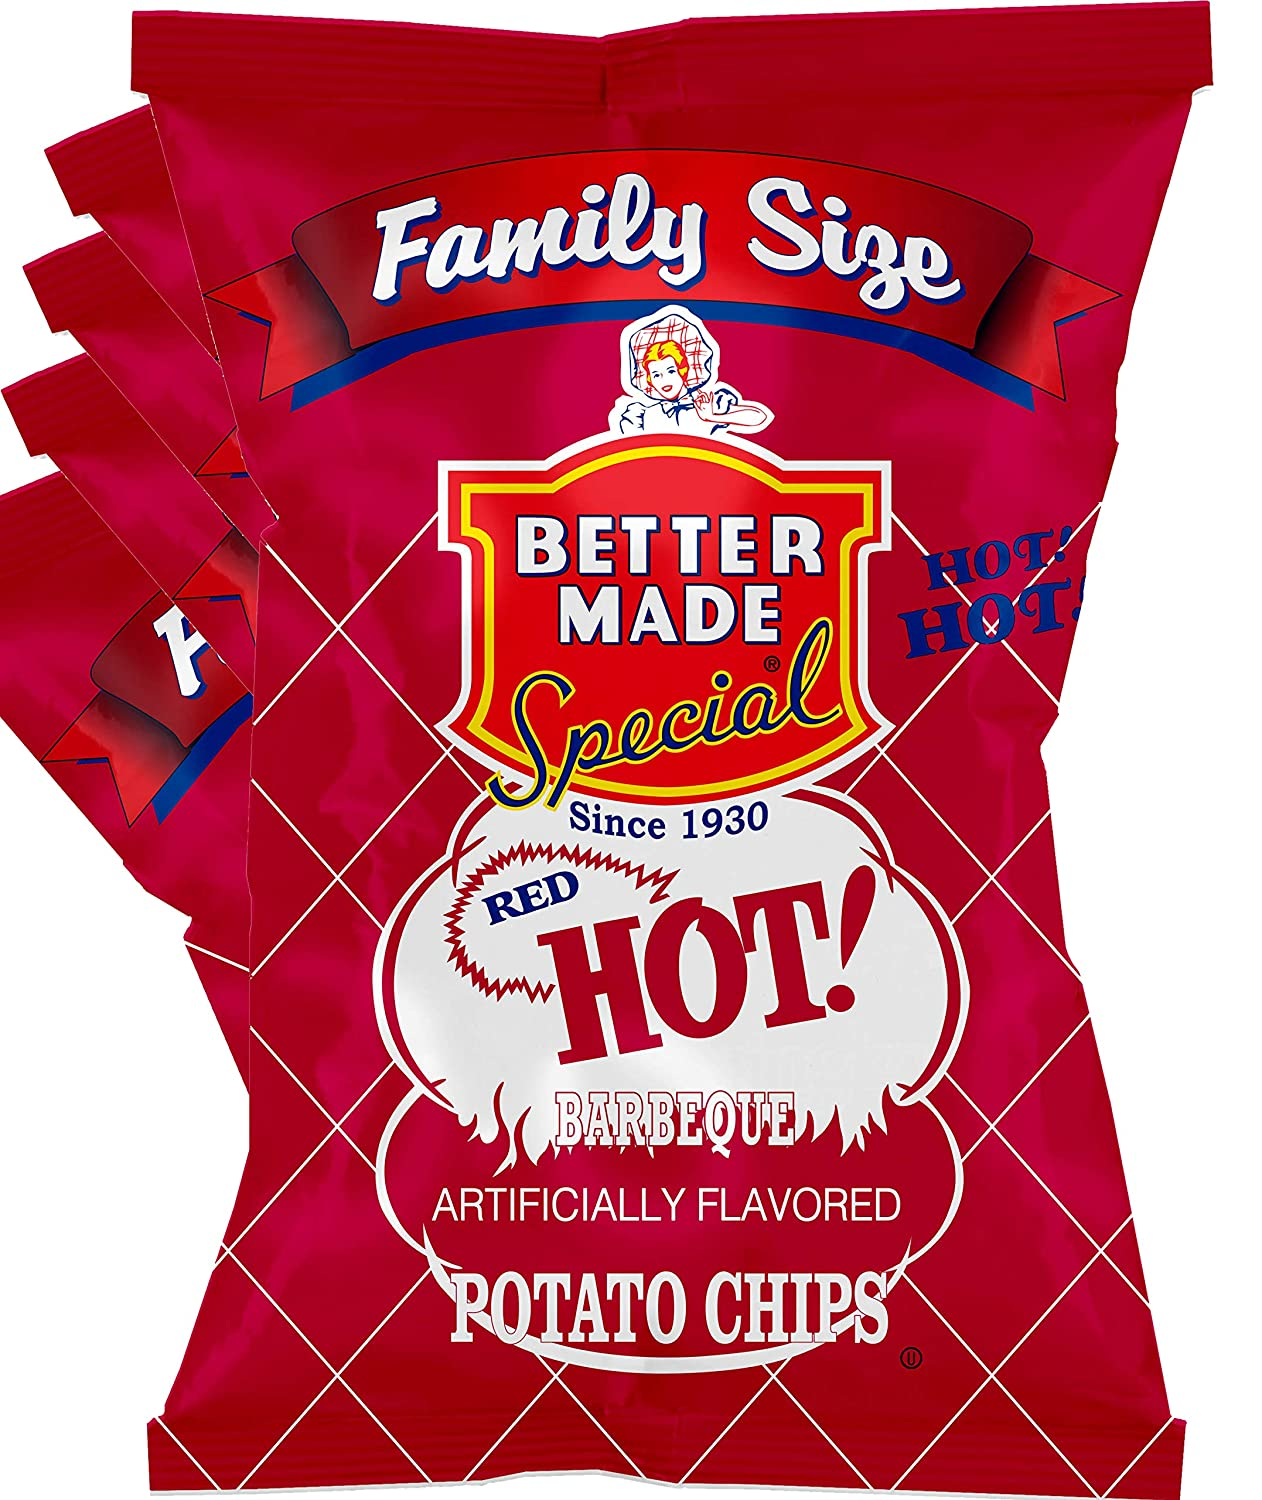 Better Made Special Potato Chips - Bags o 4 x 8.5-10oz A surprise price online shopping is realized Pack